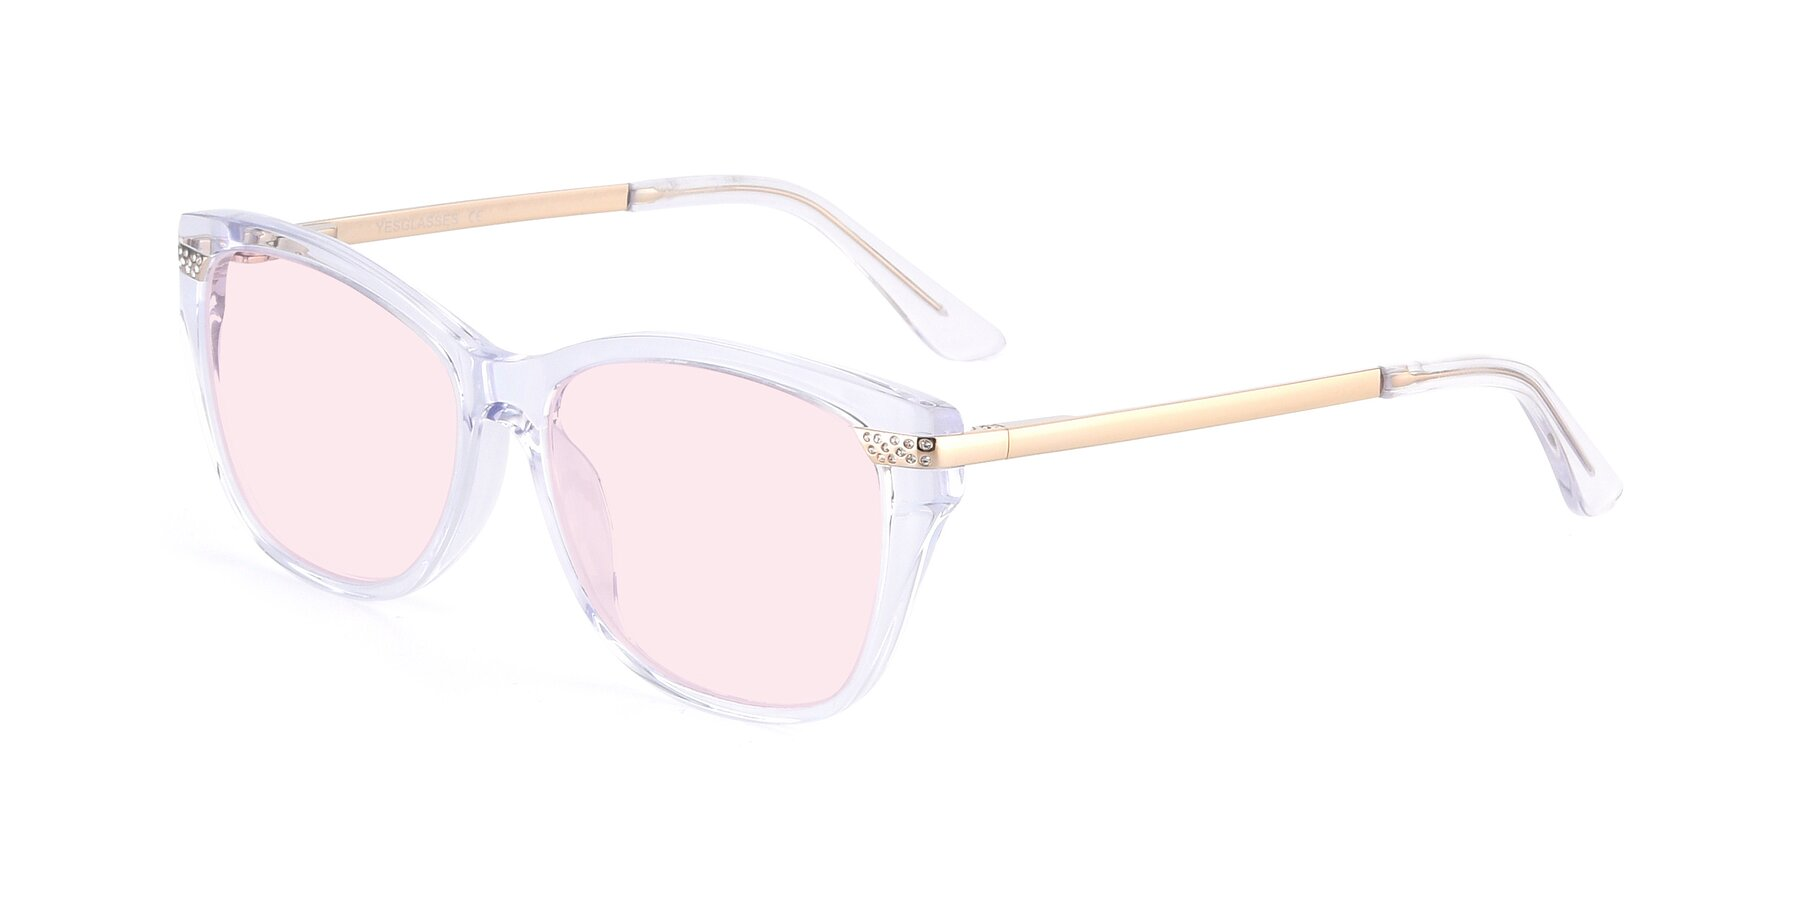 Angle of 17515 in Clear with Light Pink Tinted Lenses